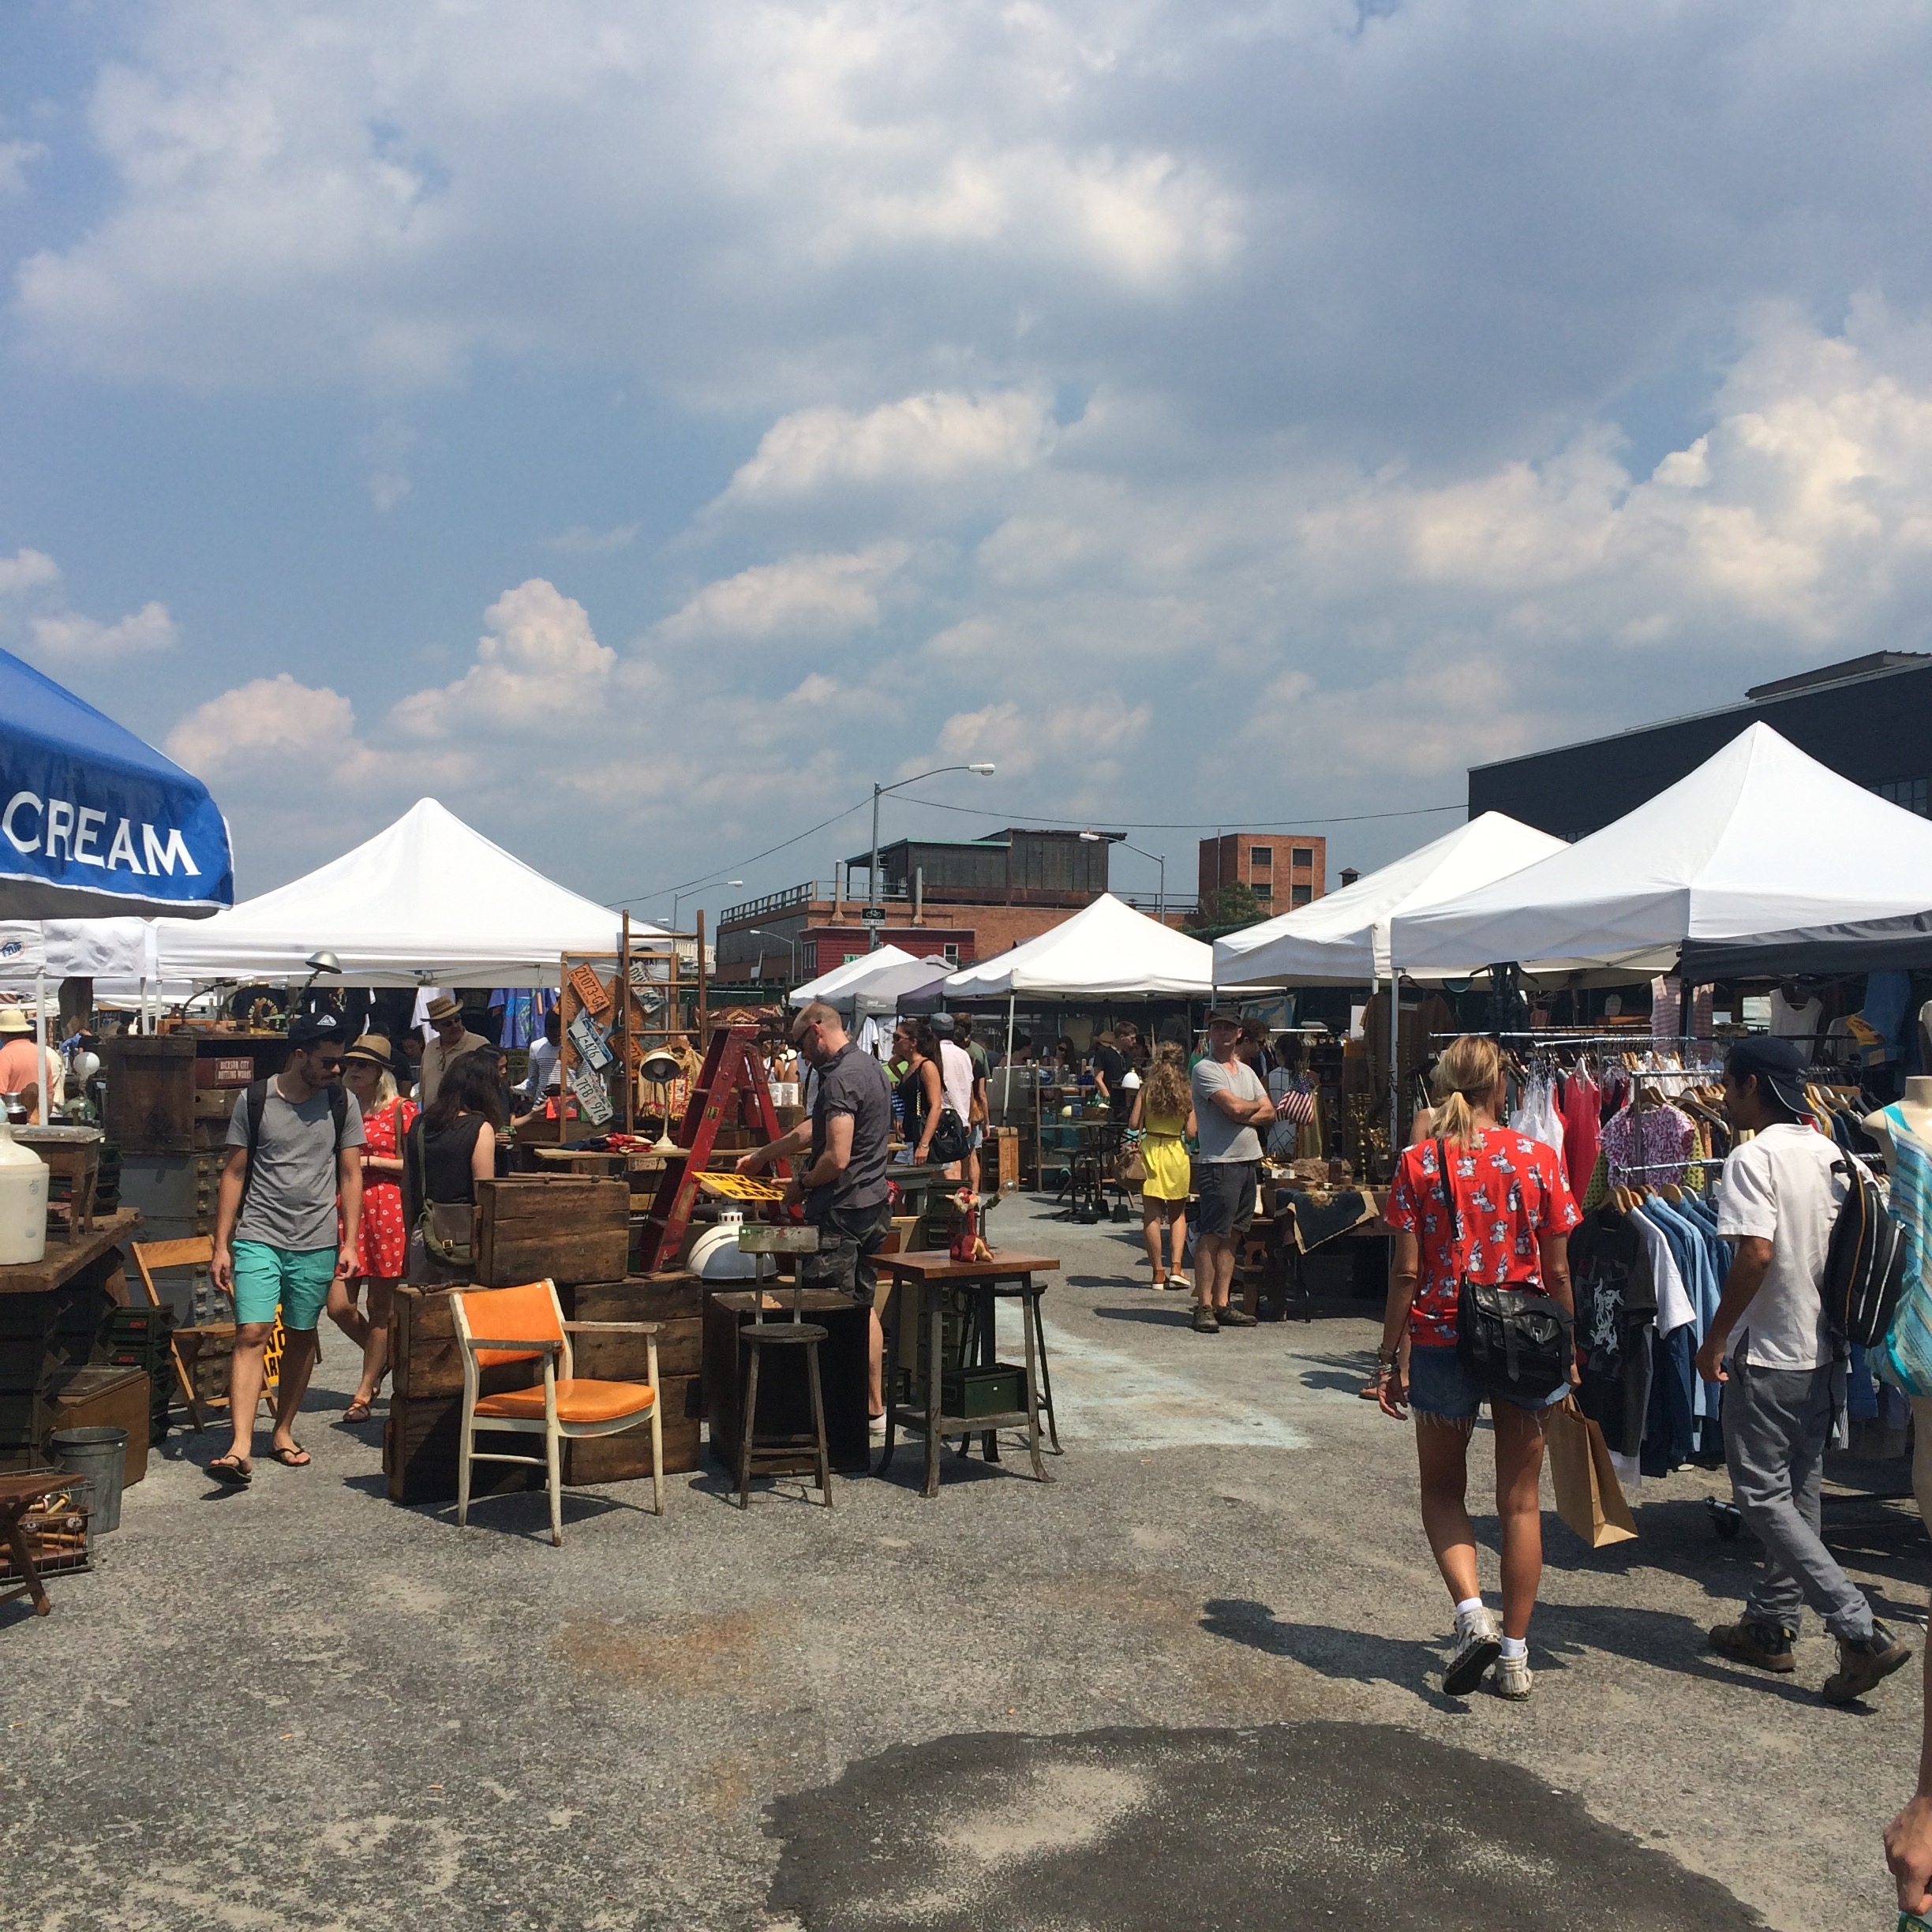 BROOKLYN FLEA, YA'LL!